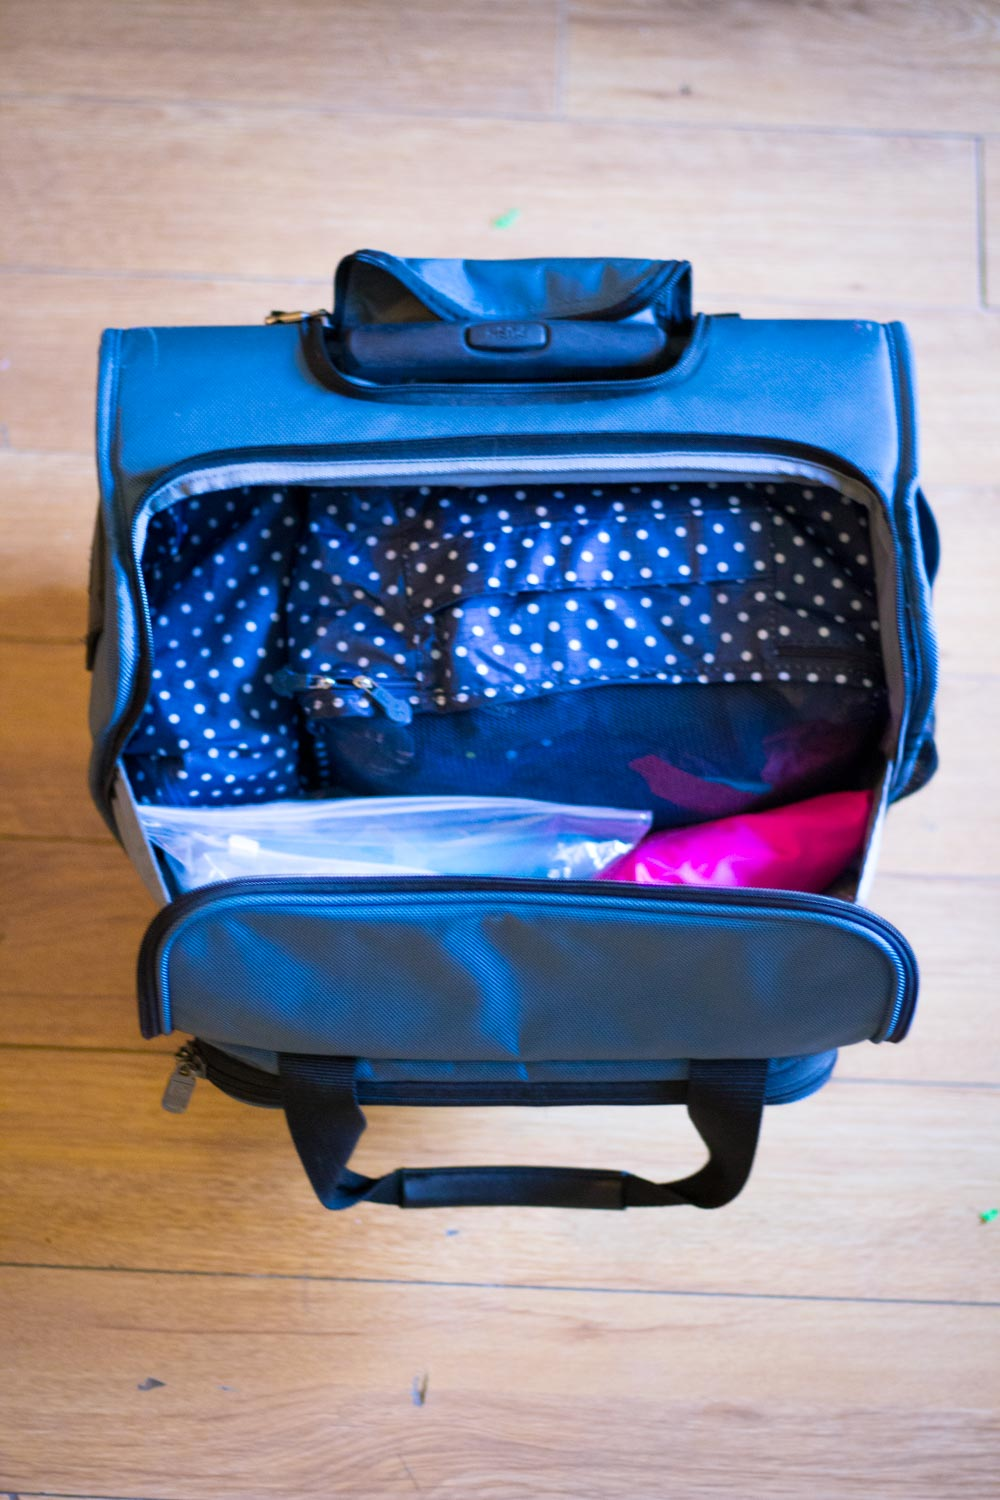 Underseat carry on bag full of winter clothes for Europe